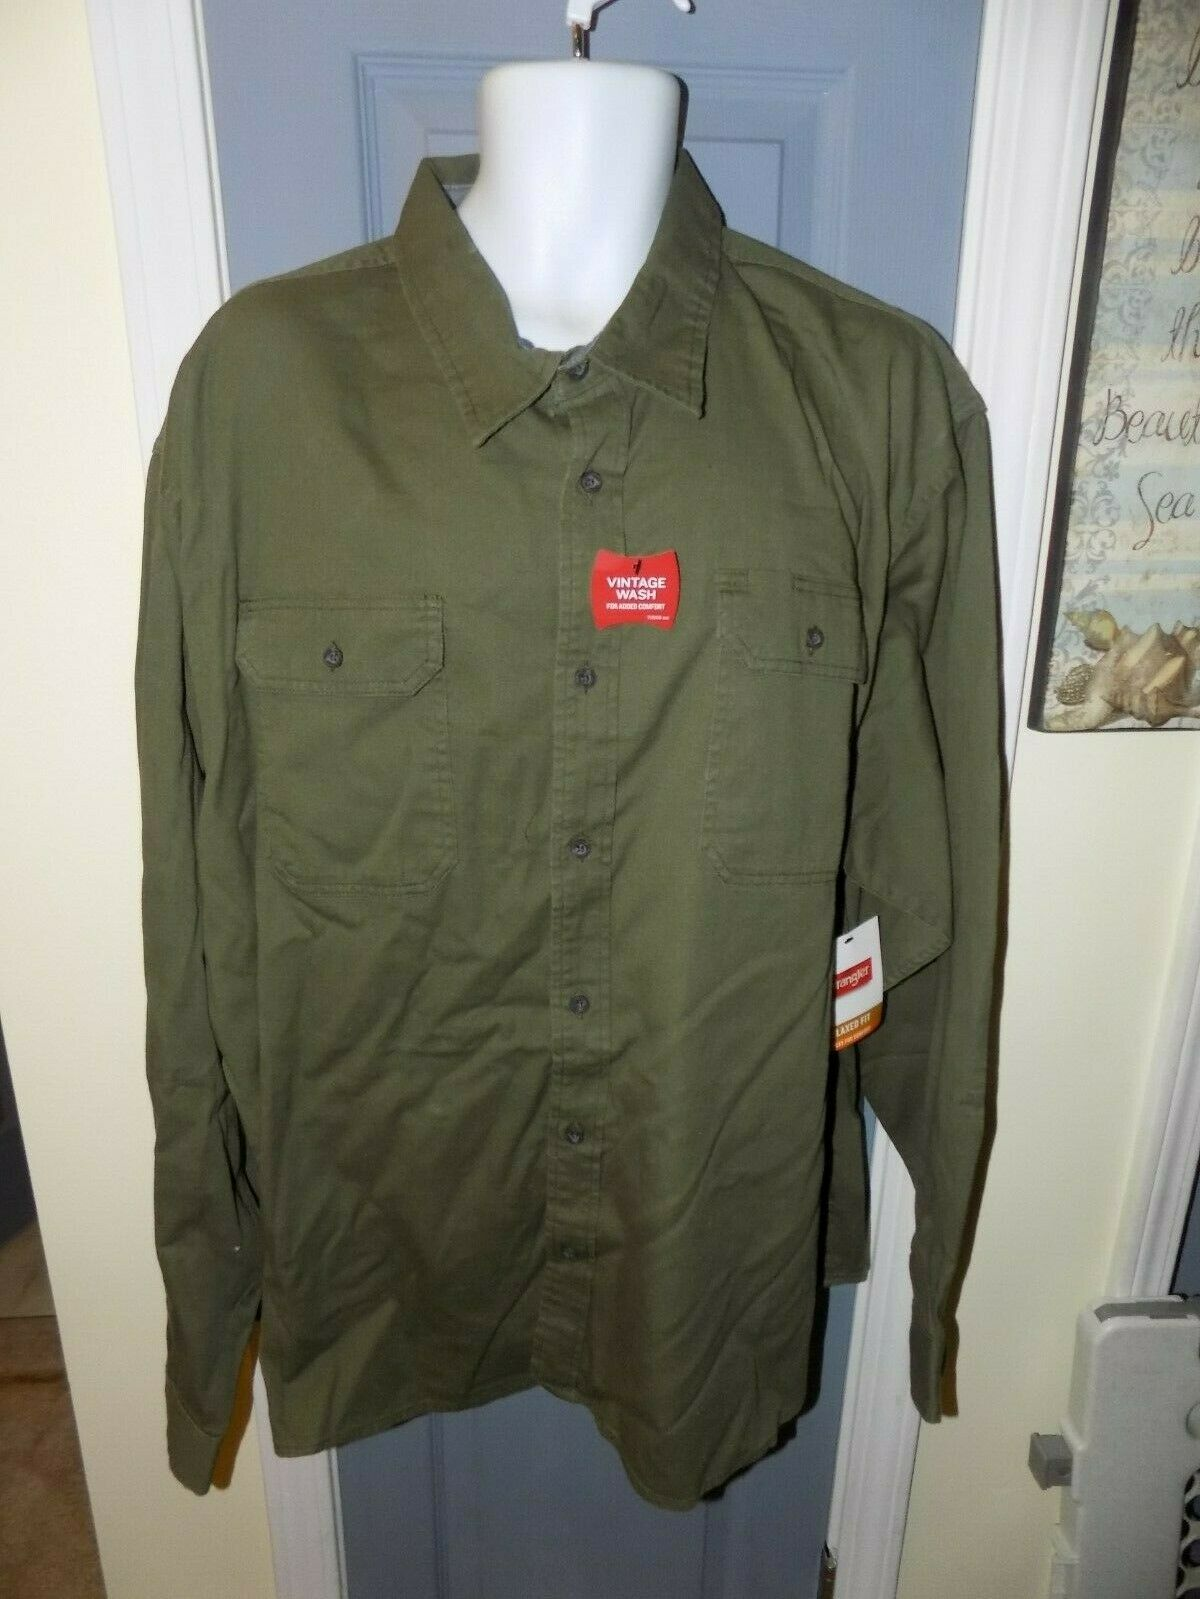 Primary image for Wrangler Flex For Comfort Green Long Sleeve Button Down Shirt Size 3XL Men's